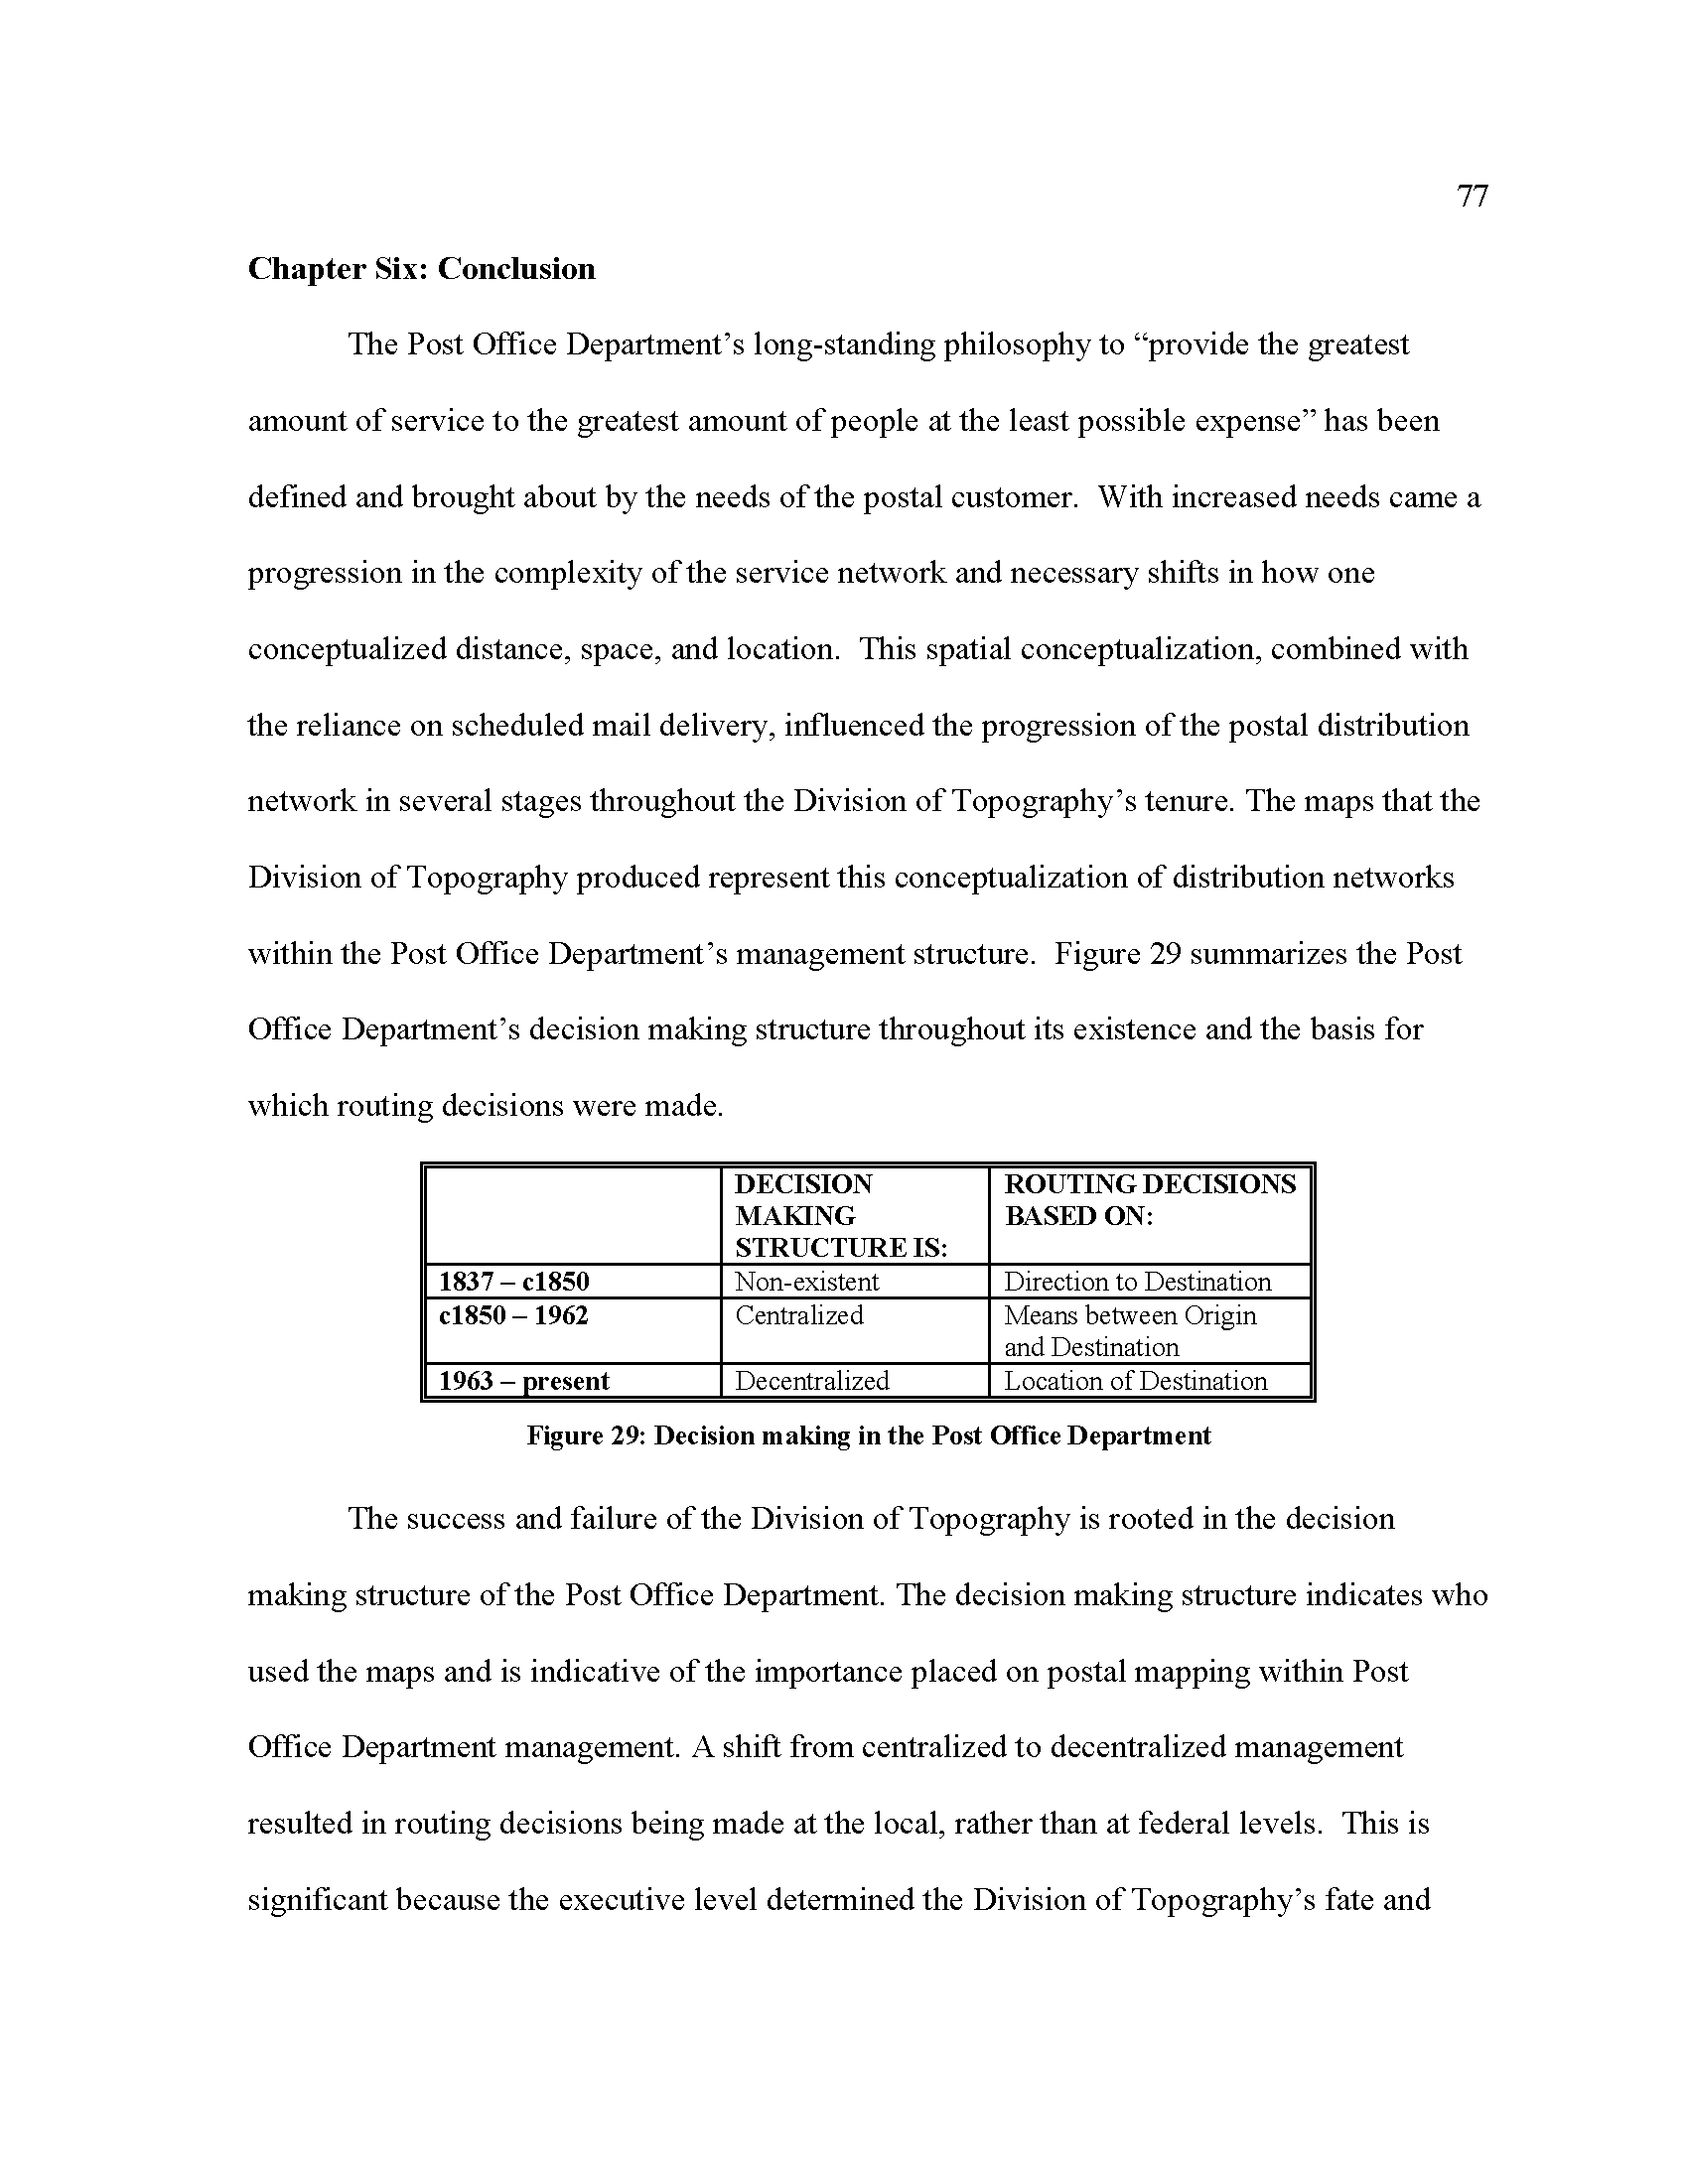 Thesis Final_Page_081.png